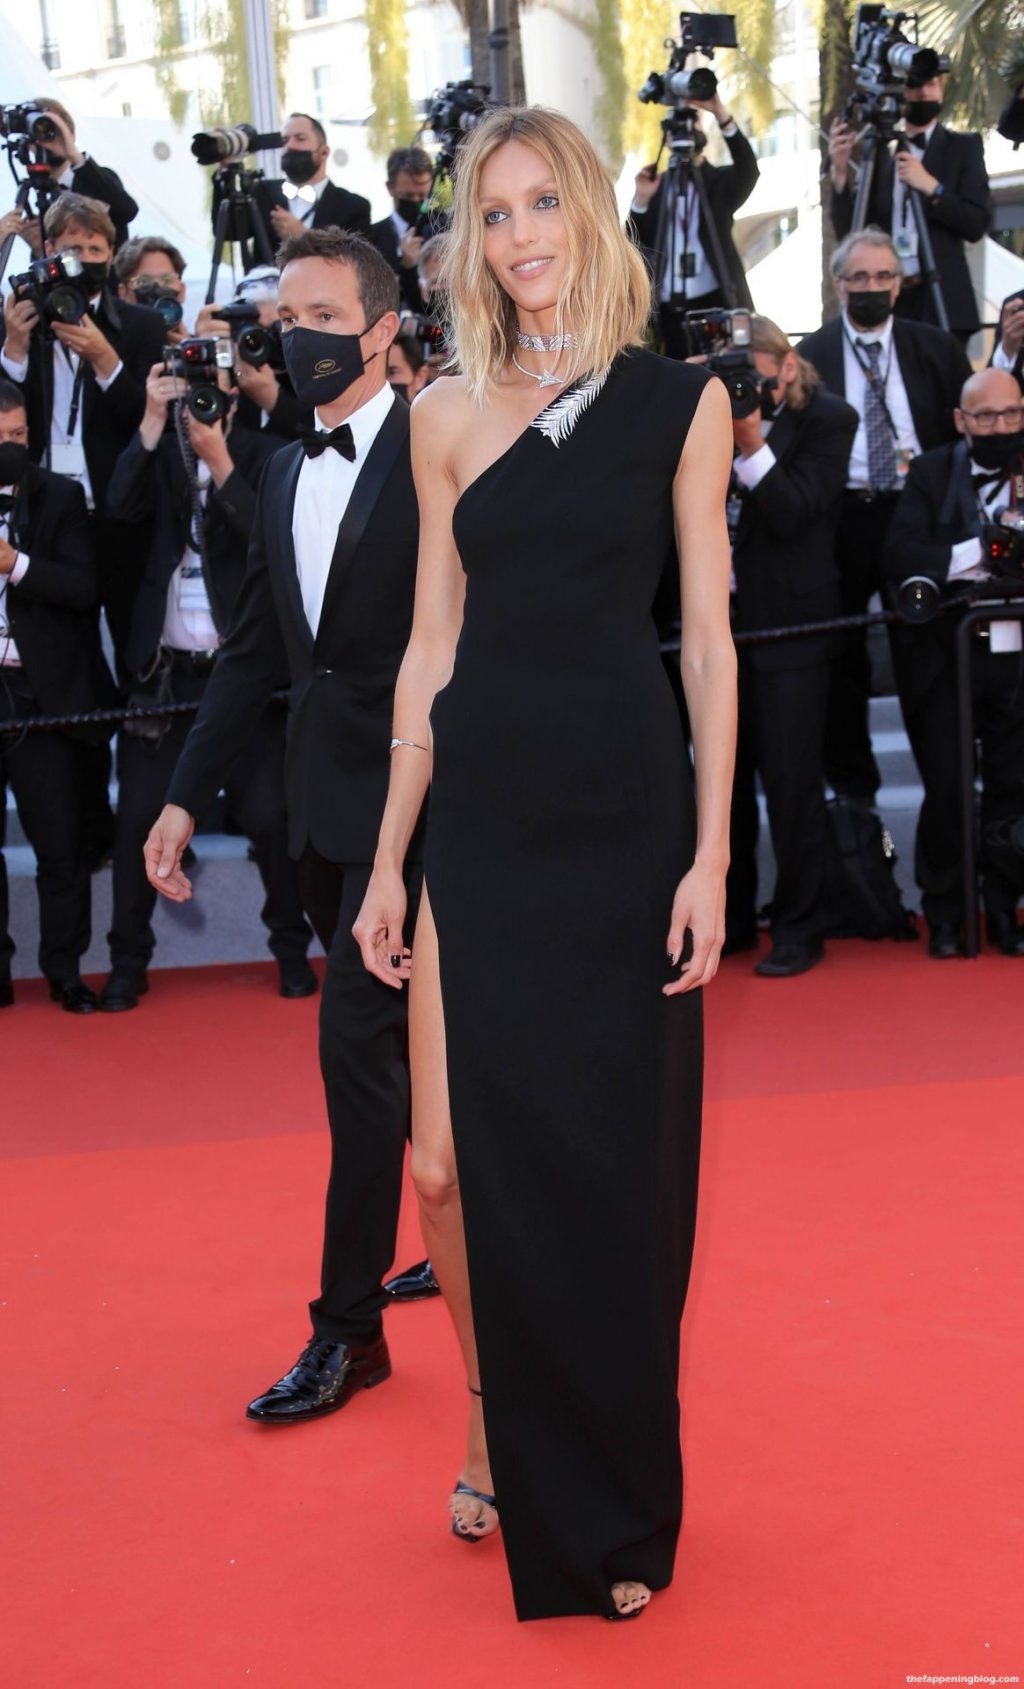 Anja Rubik Flaunts Her Legs in a Sexy Black Dress on The Red Carpet in Cannes (98 Photos)